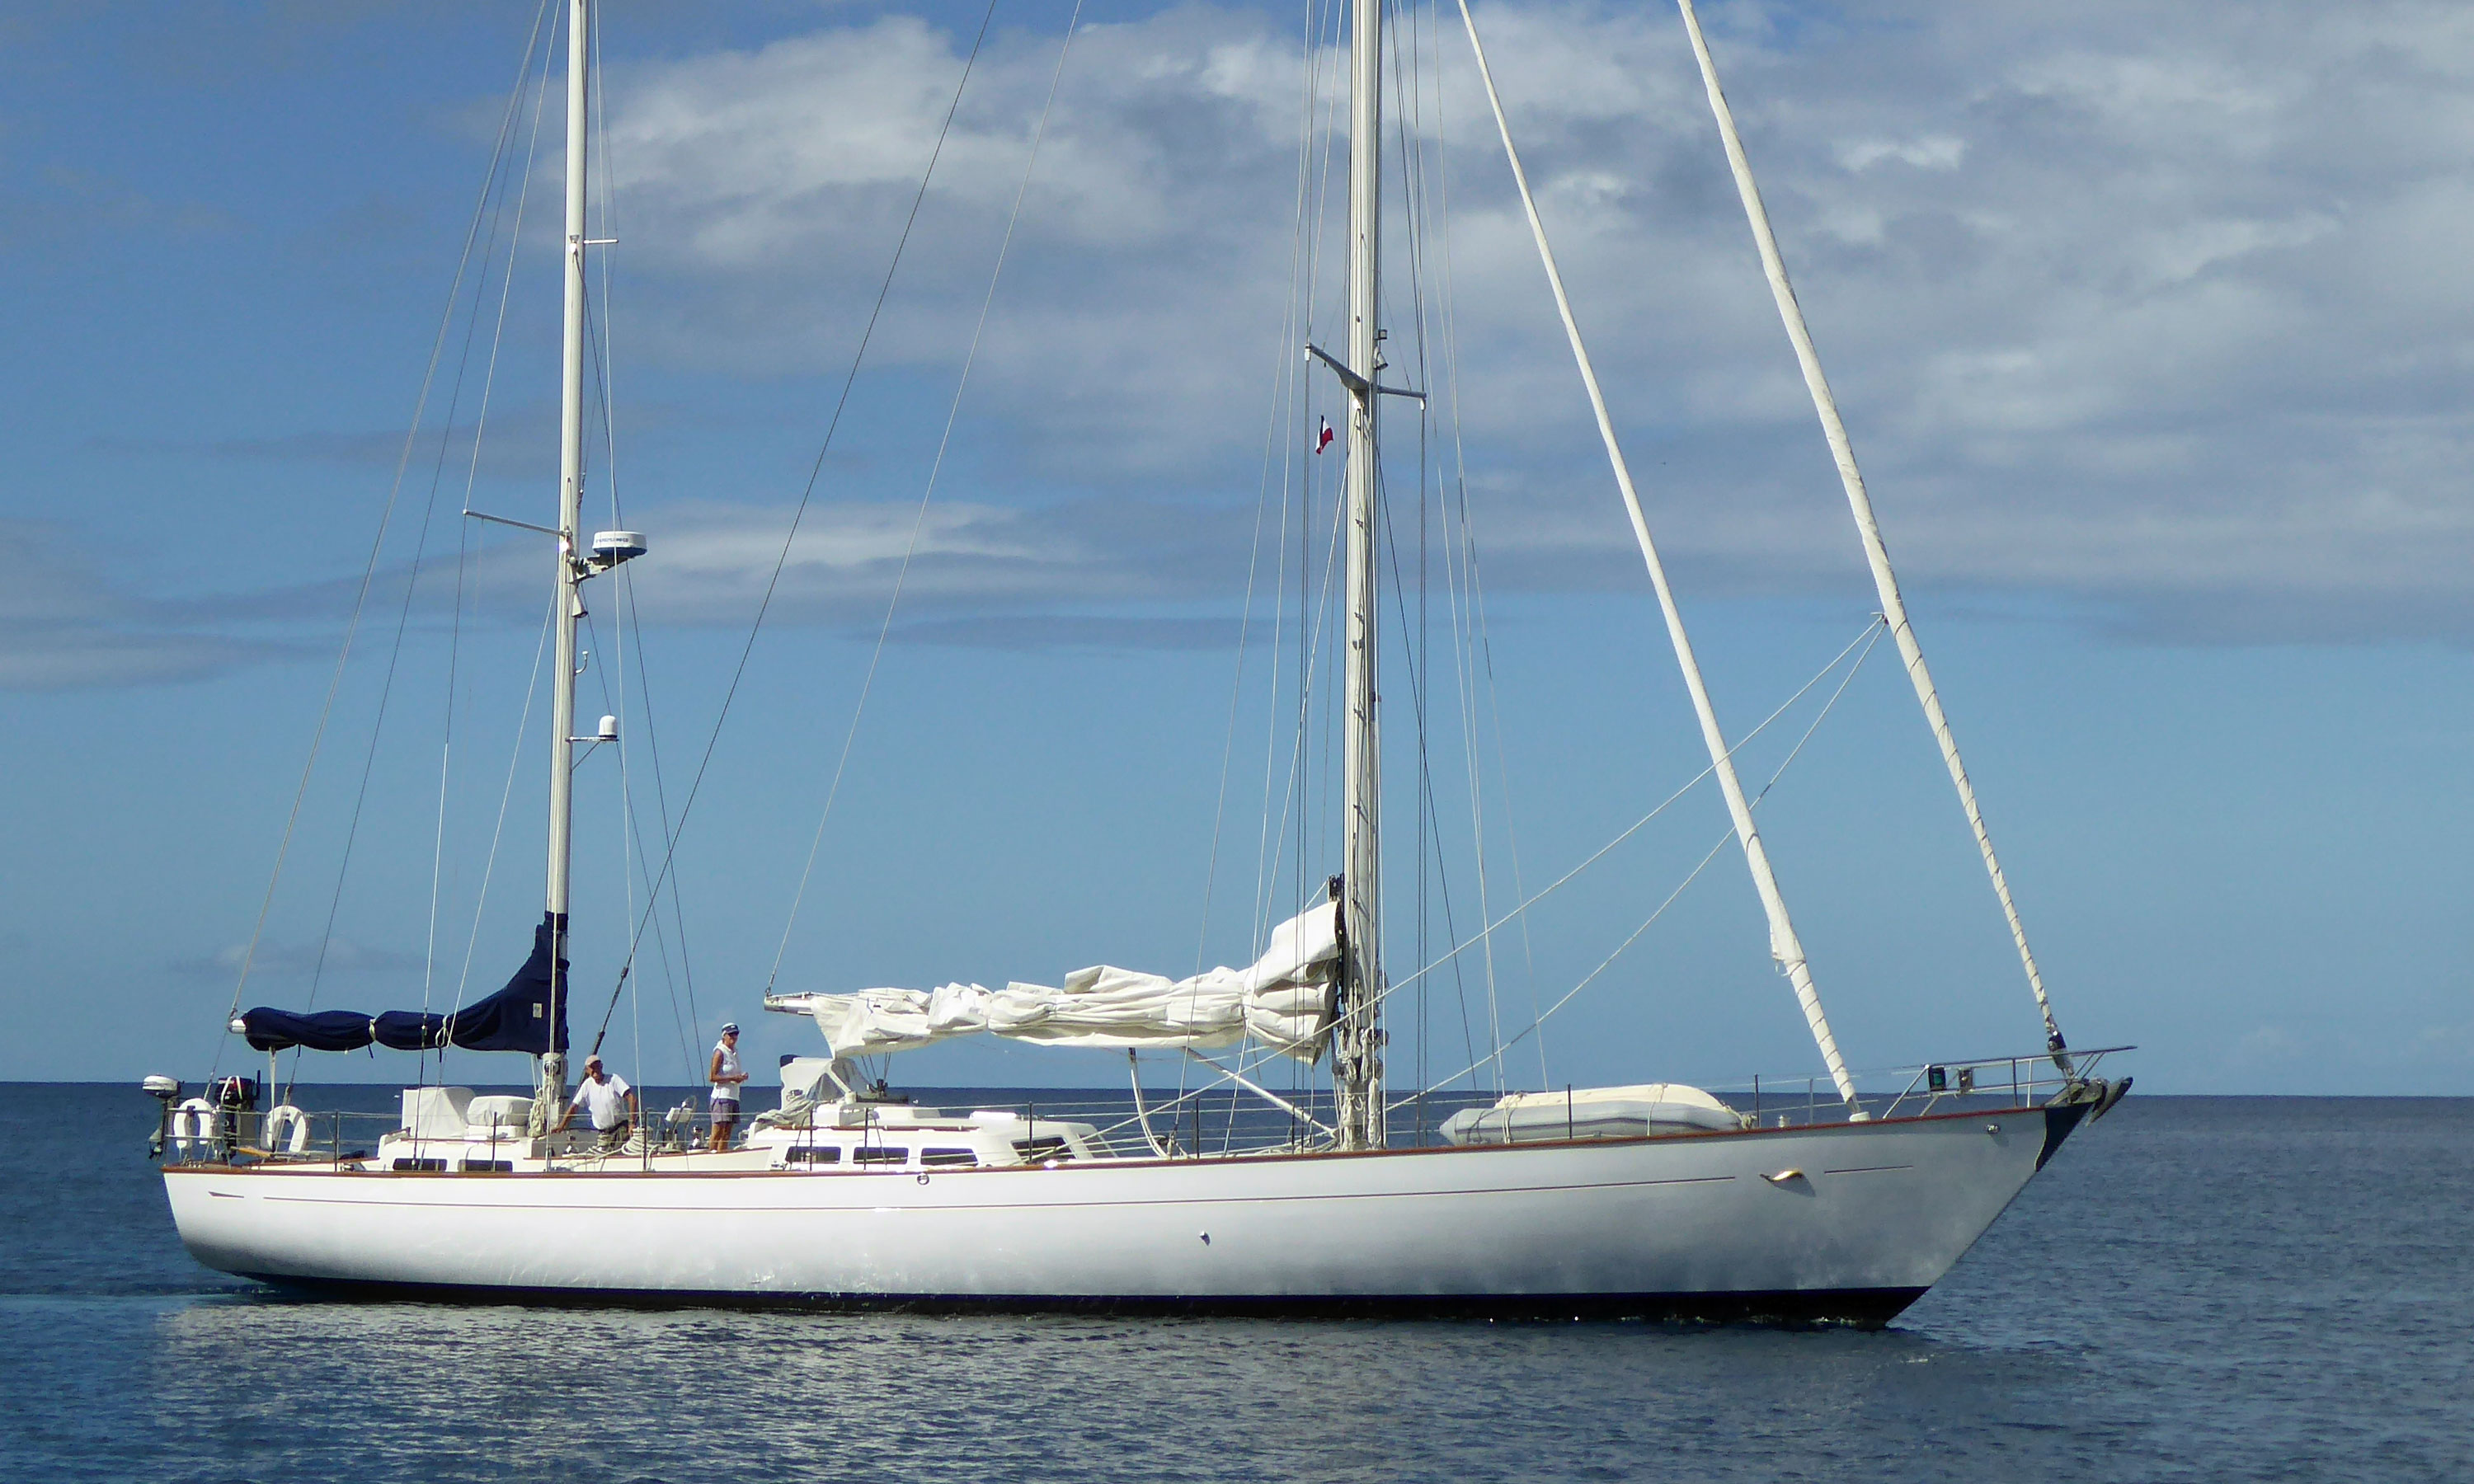 An Ocean 71 Sailboat